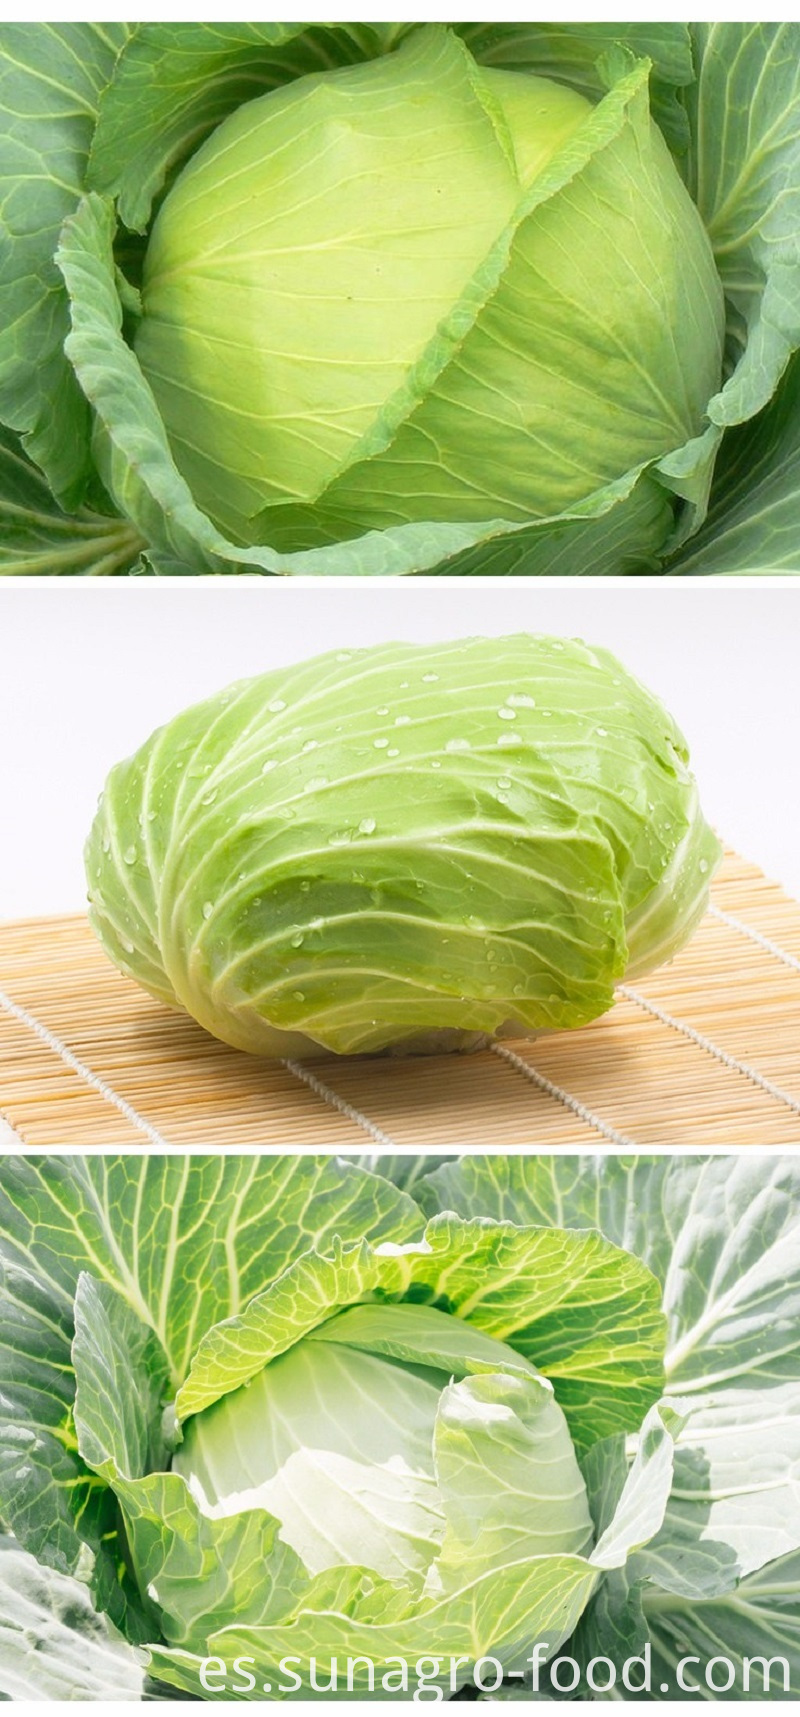 Organic Healthy Vegetable Of Cabbage